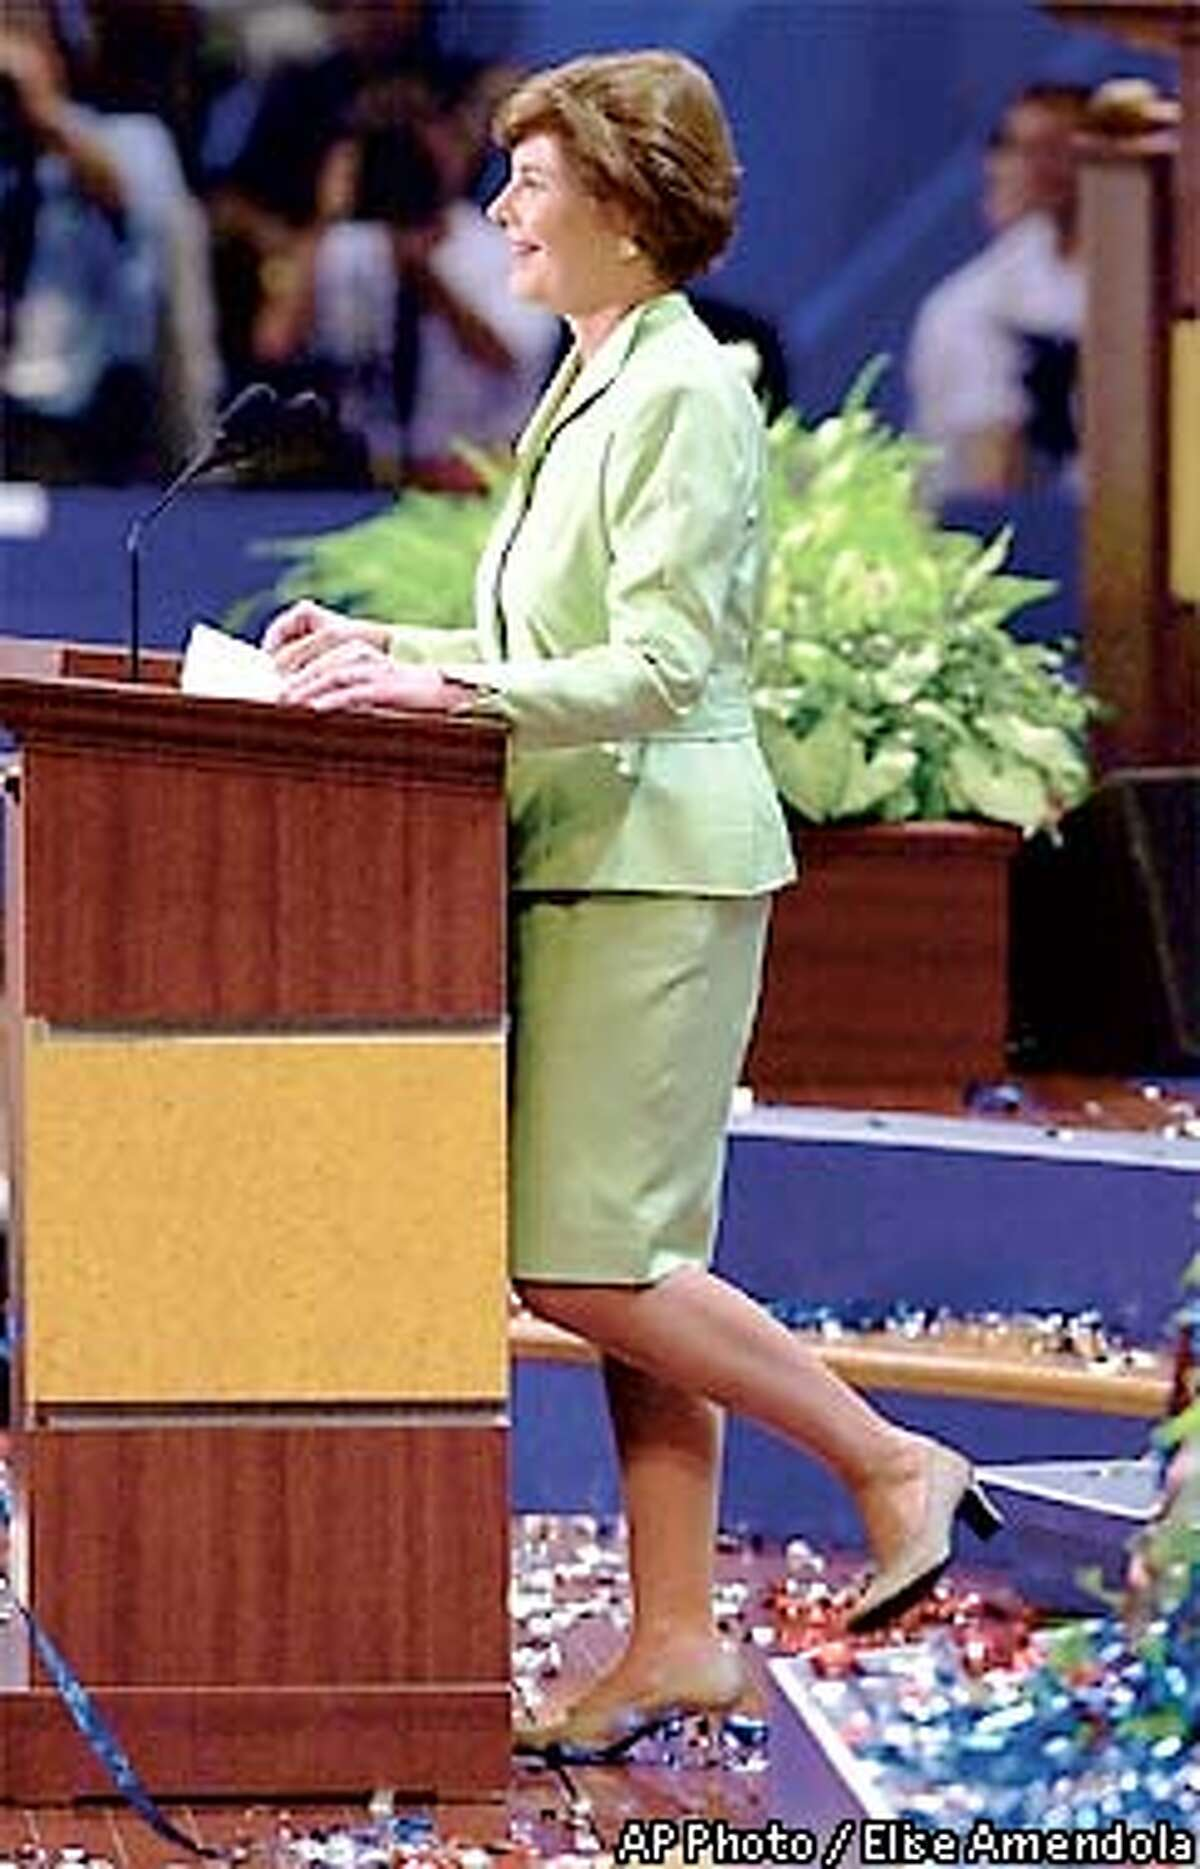 Texas first lady Laura Bush, wife of presidential hopeful George W. Bush, stands behind the podium amid confetti that was throw after she was introduced to delegates during the evening session of the Republican National Convention in Philadelphia on Monday, July 31, 2000. (AP Photo/Elise Amendola)